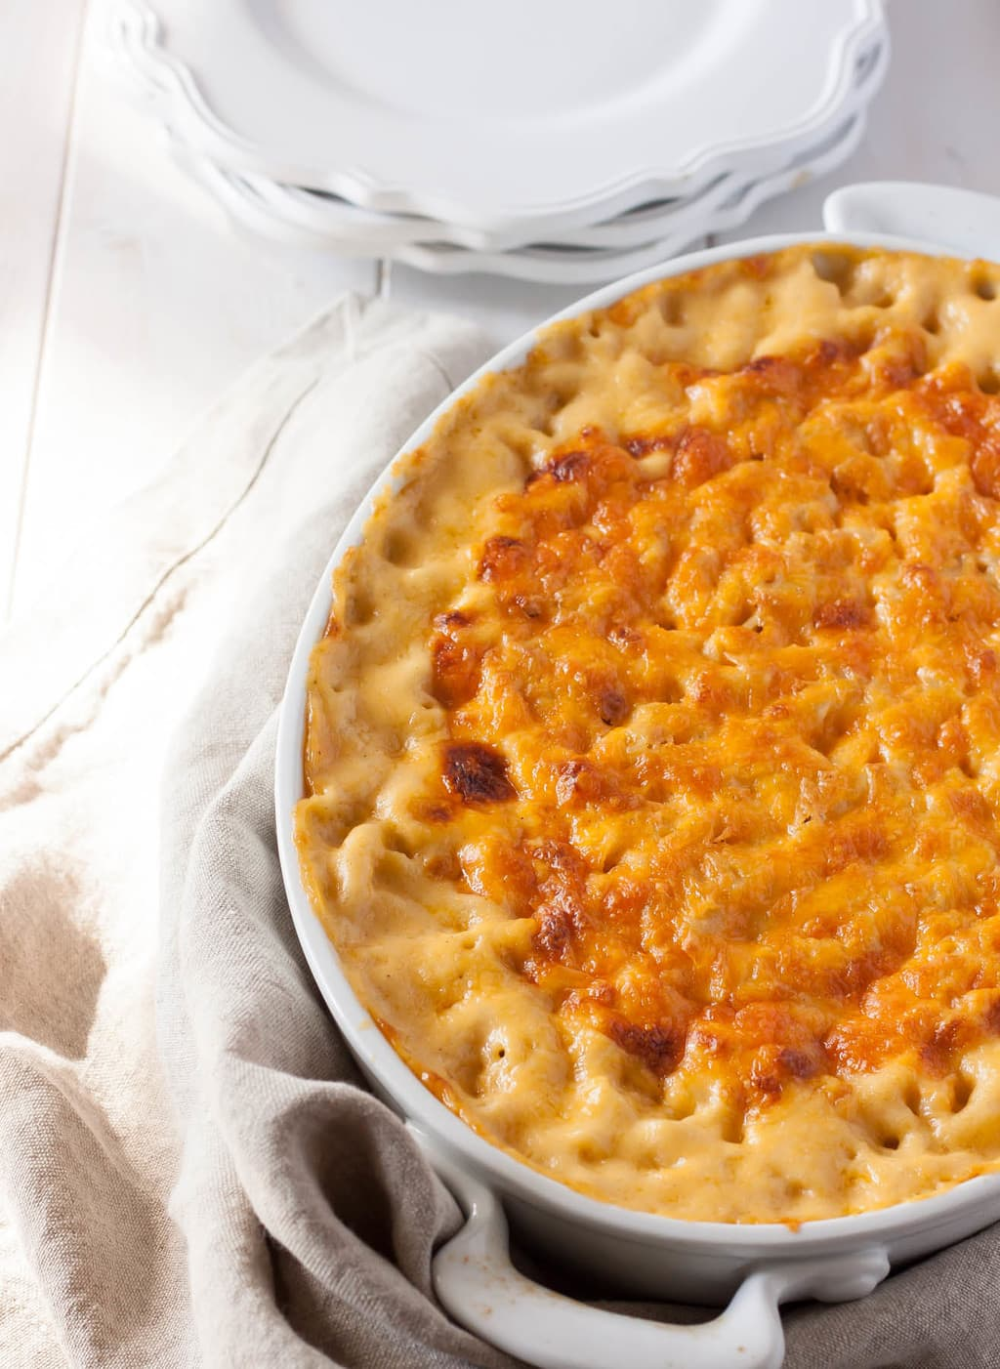 Creamy Baked Macaroni And Cheese Recipe In 2020 Recipes Baked